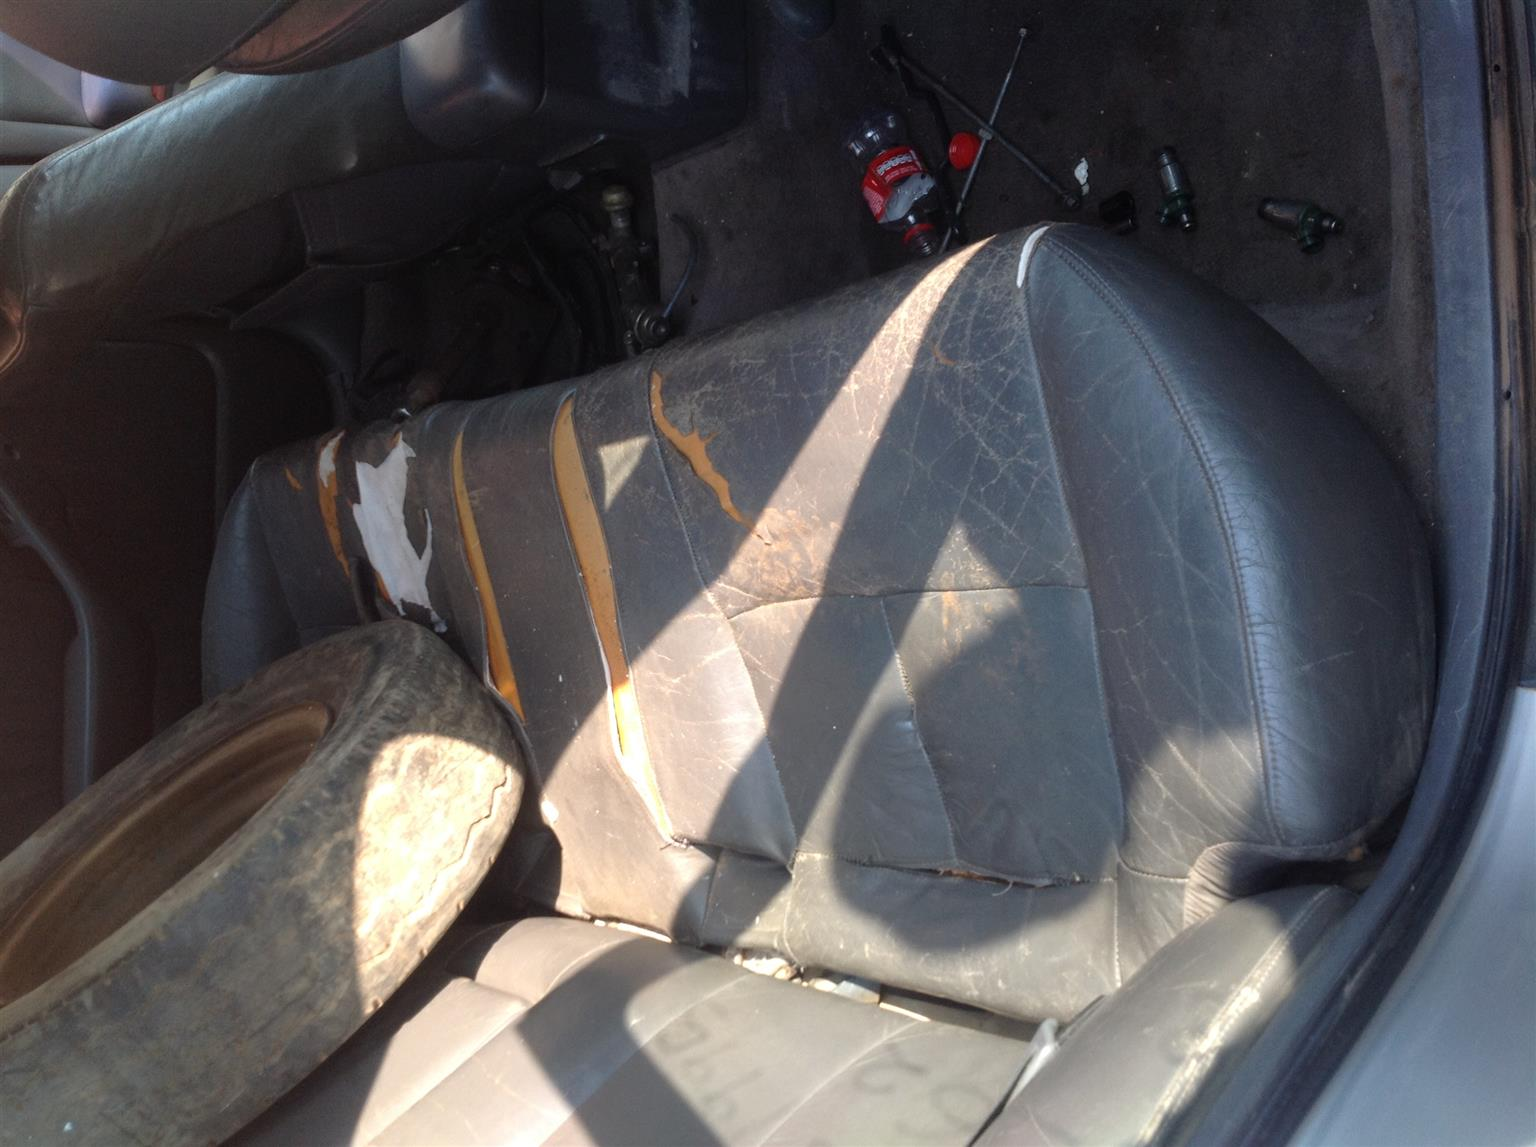 Stripping Toyota Camry 220 SEI 1995 for Spares